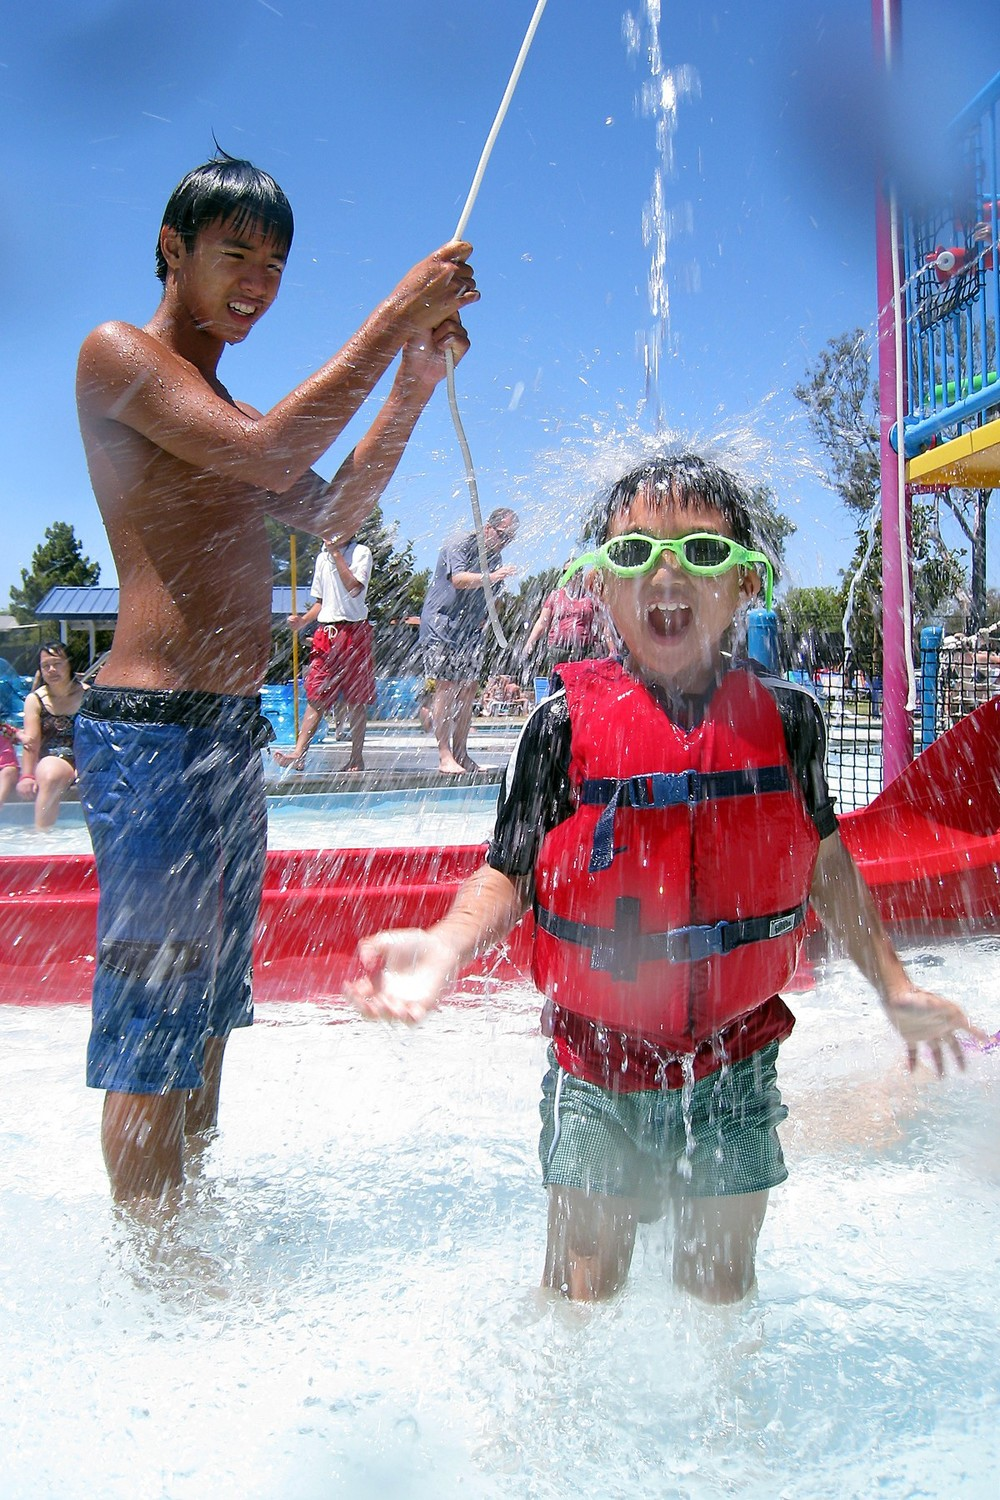 Connor Vo & cousin at waterpark.jpg